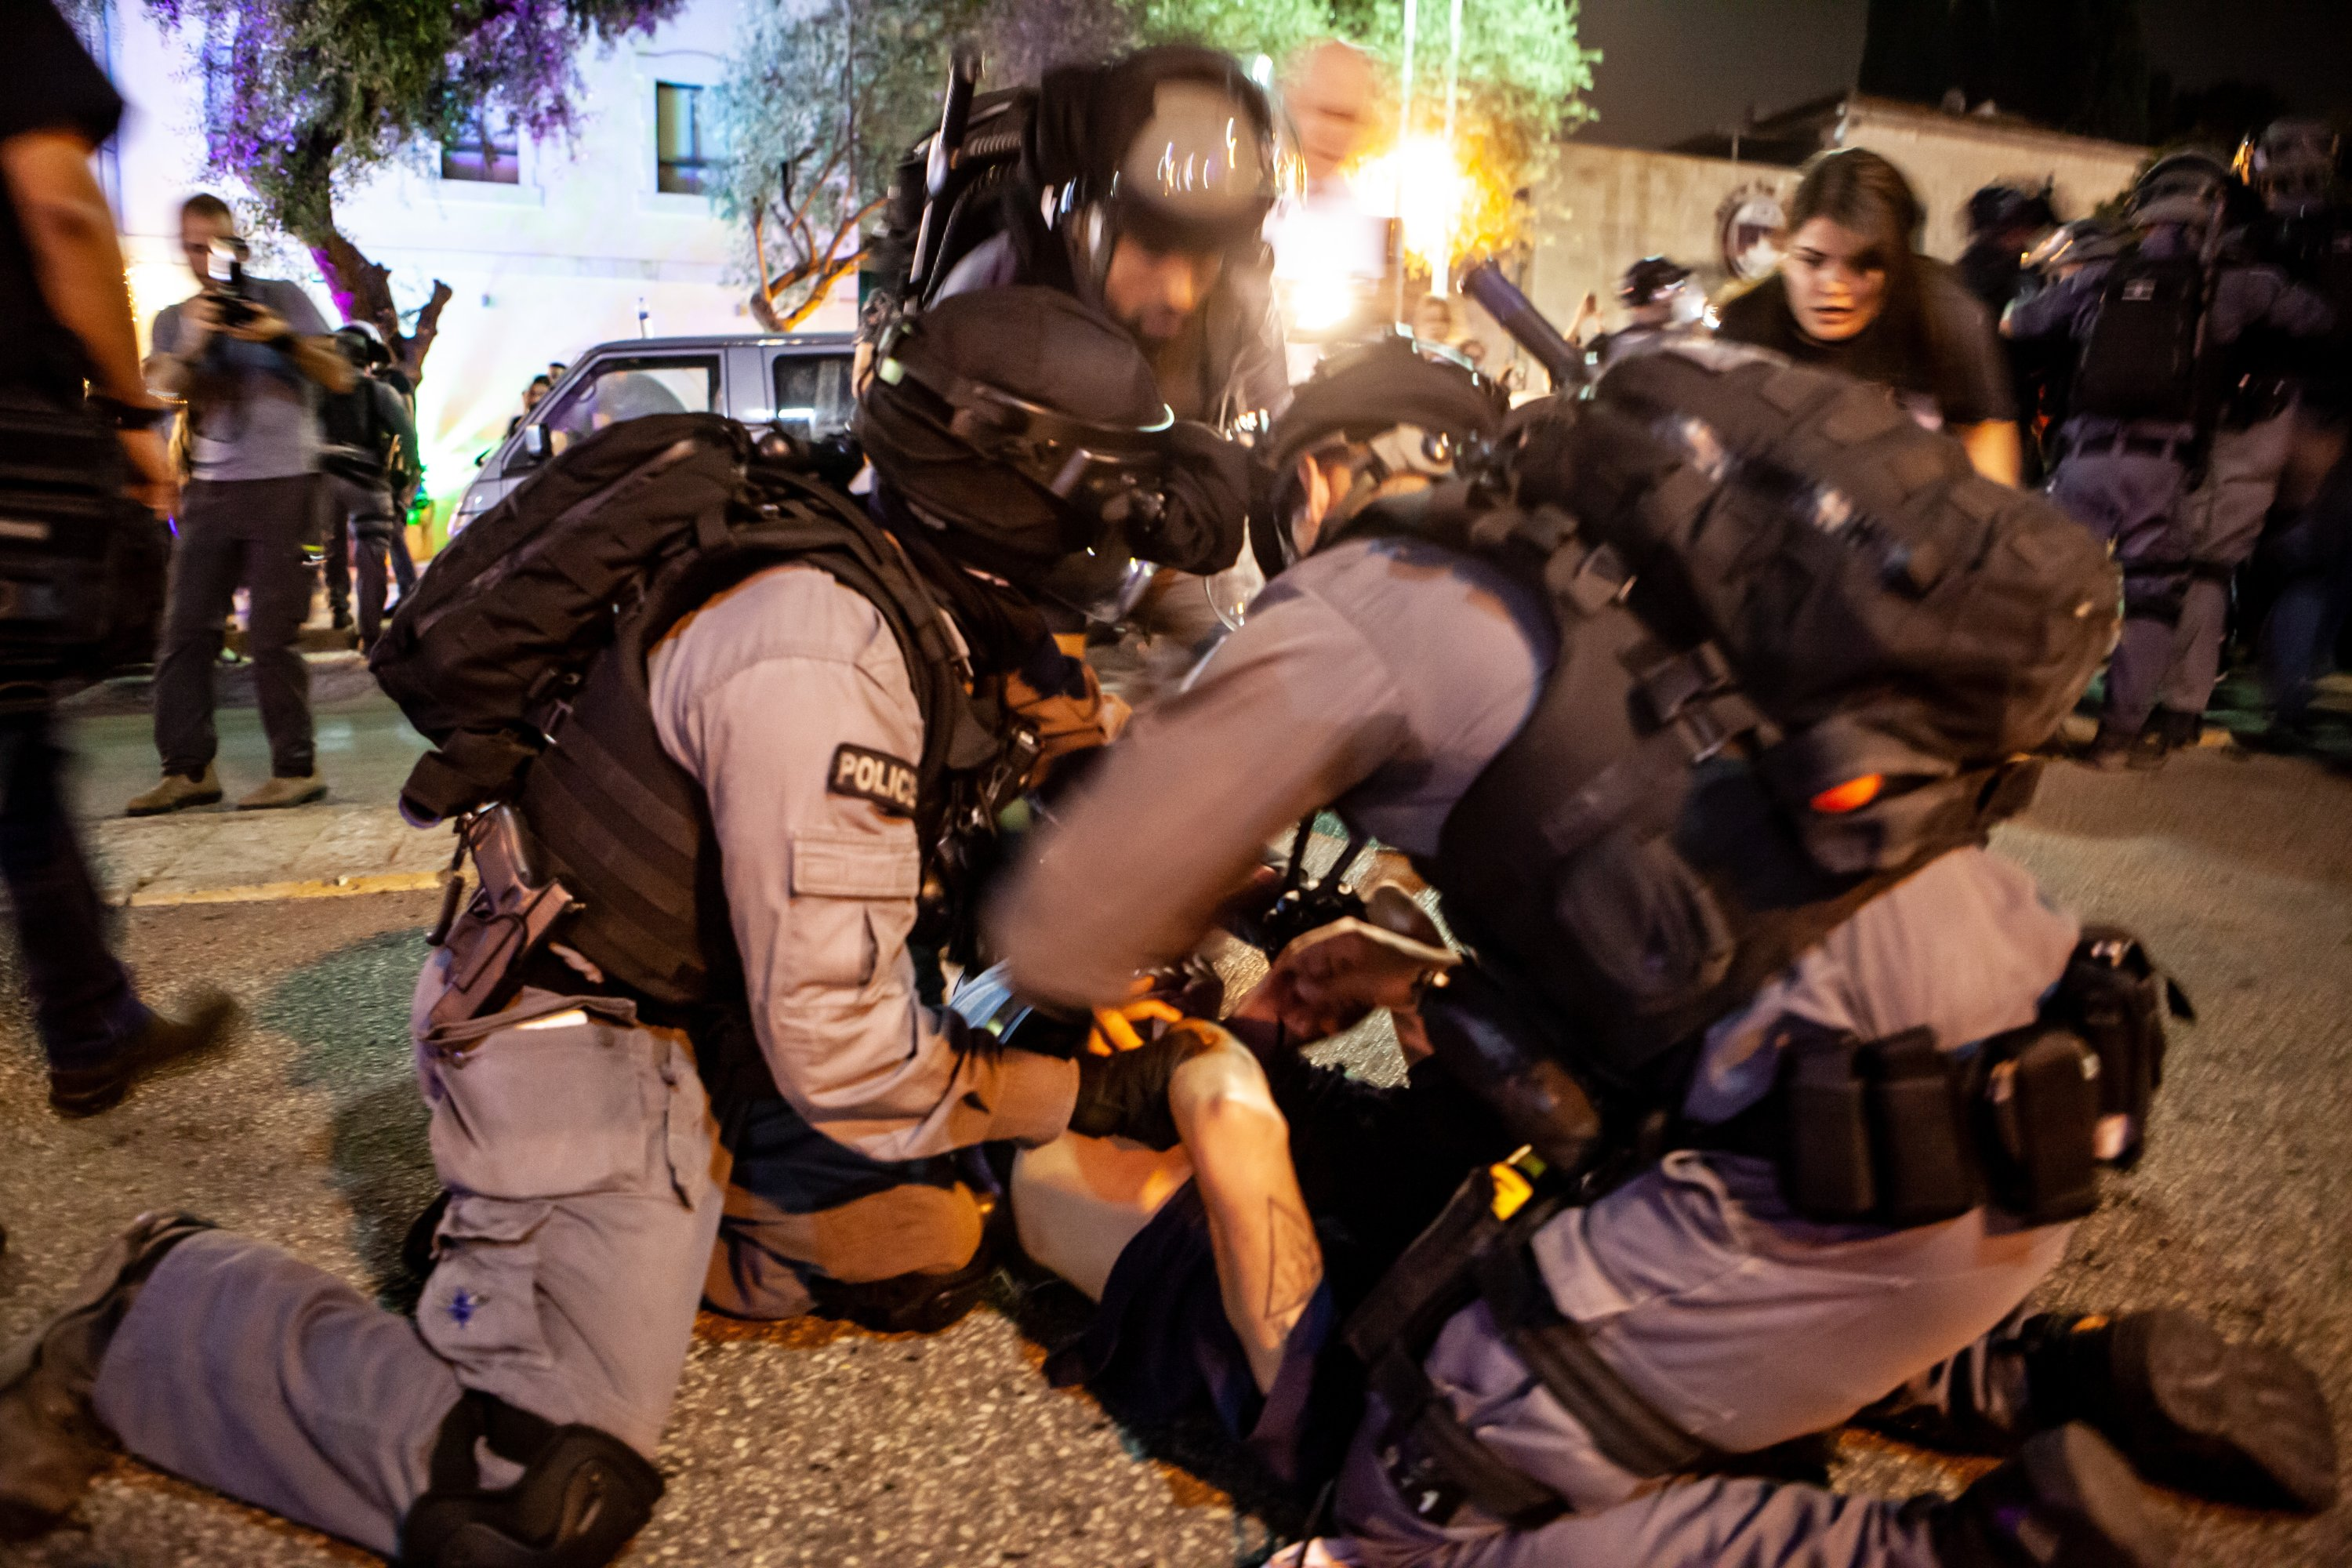 Palestinian citizens of Israel were met with a strong Israeli police response during a protest against Israeli actions in Jerusalem's Sheikh Jarrah neighborhood, occupied Palestine, May 9, 2021. (Photo by Getty Images)